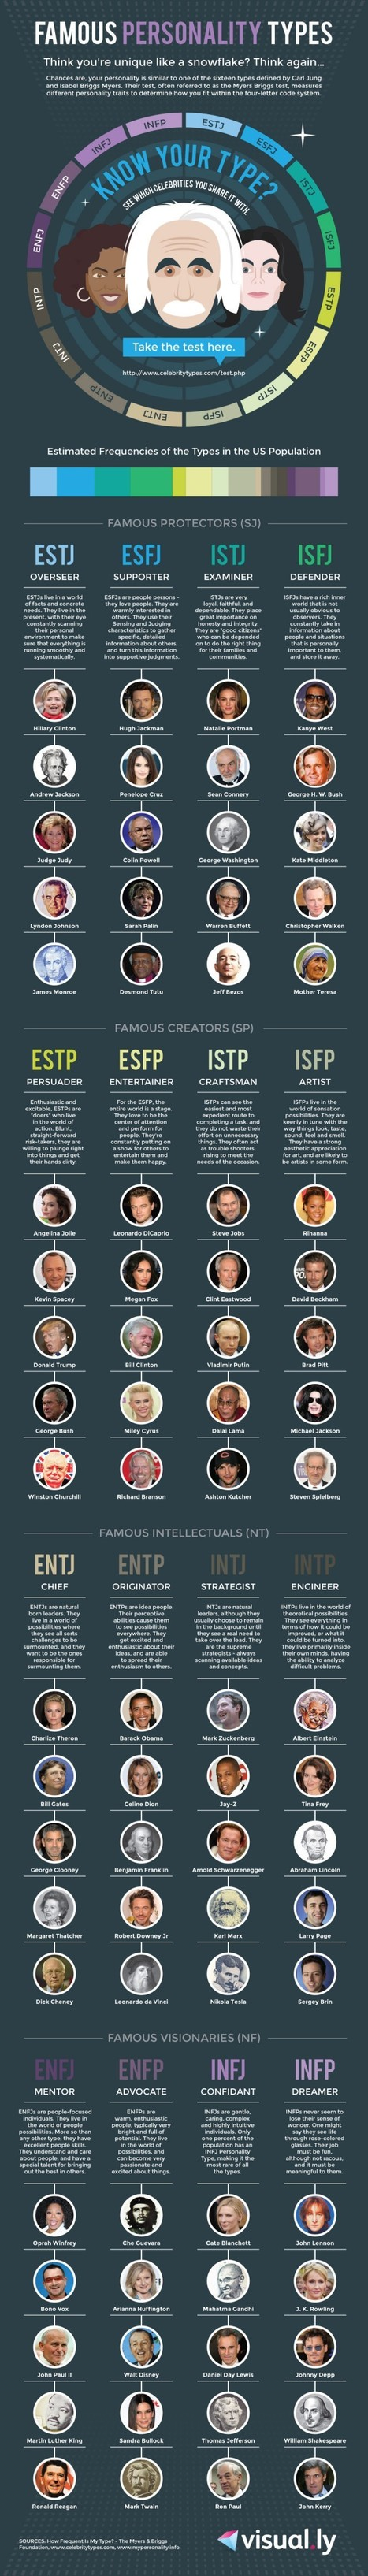 Famous Personality Types [Infographic] | Infographics | Scoop.it